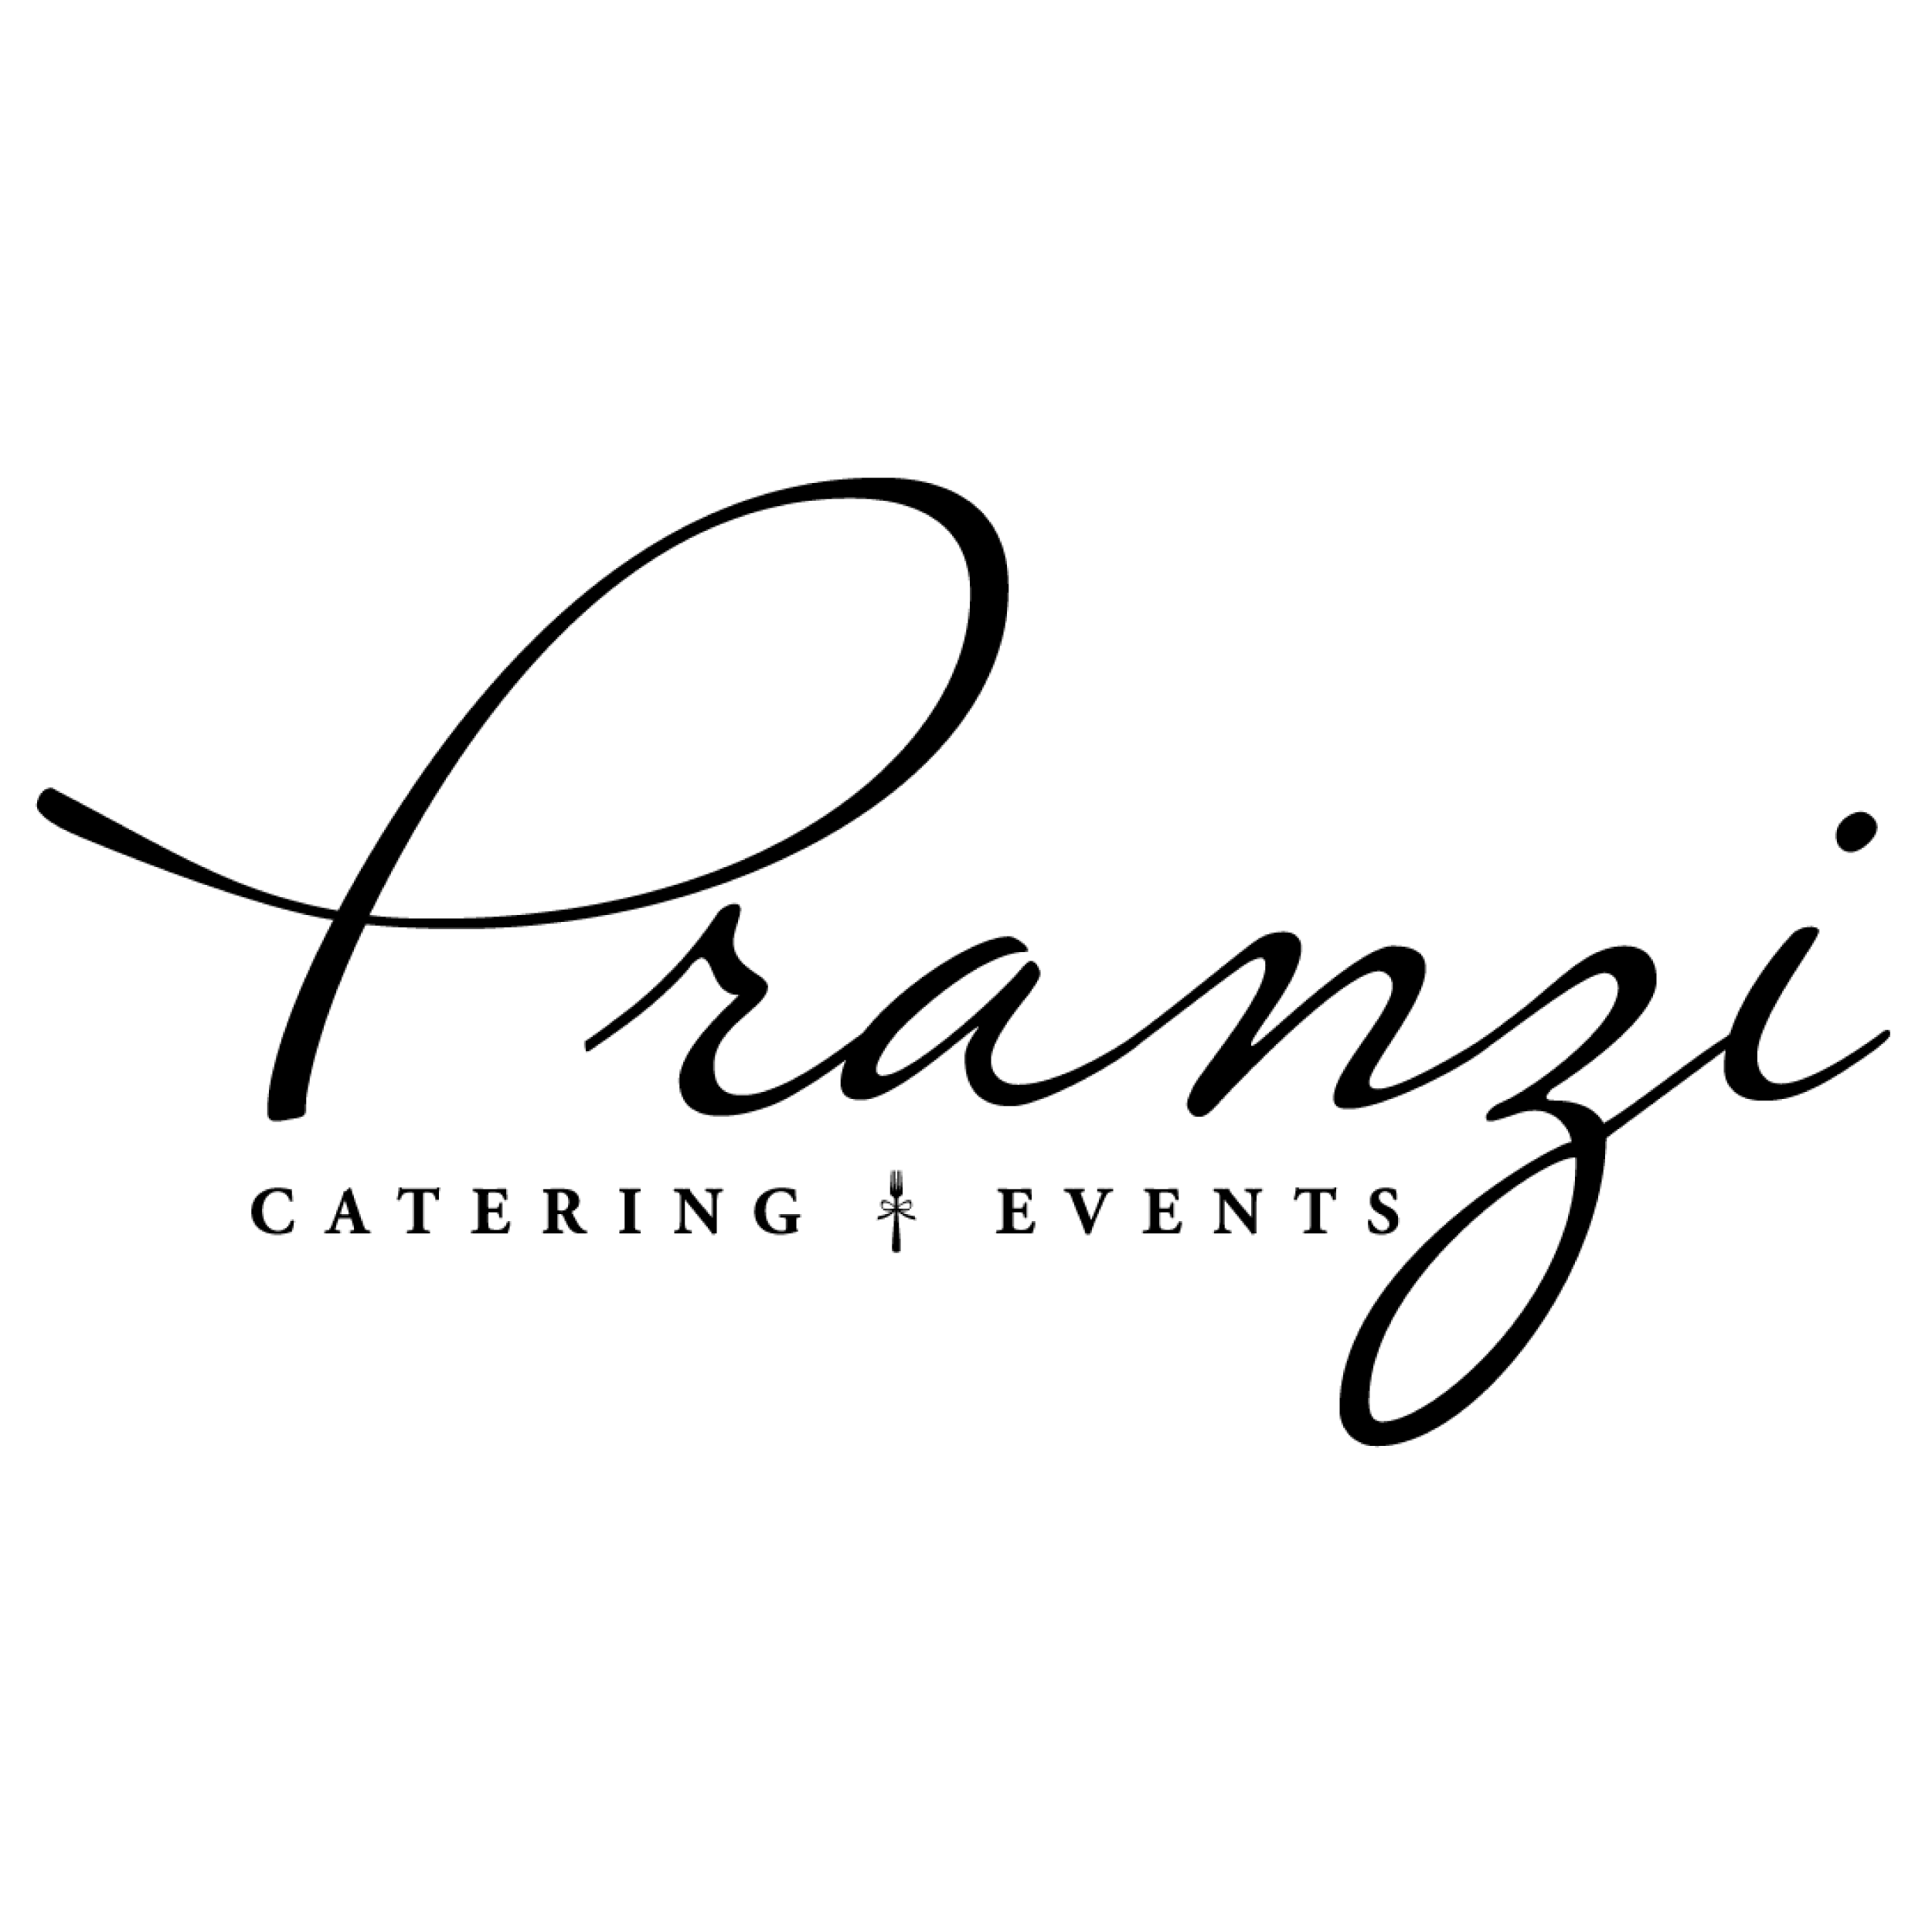 Pranzi Catering & Events